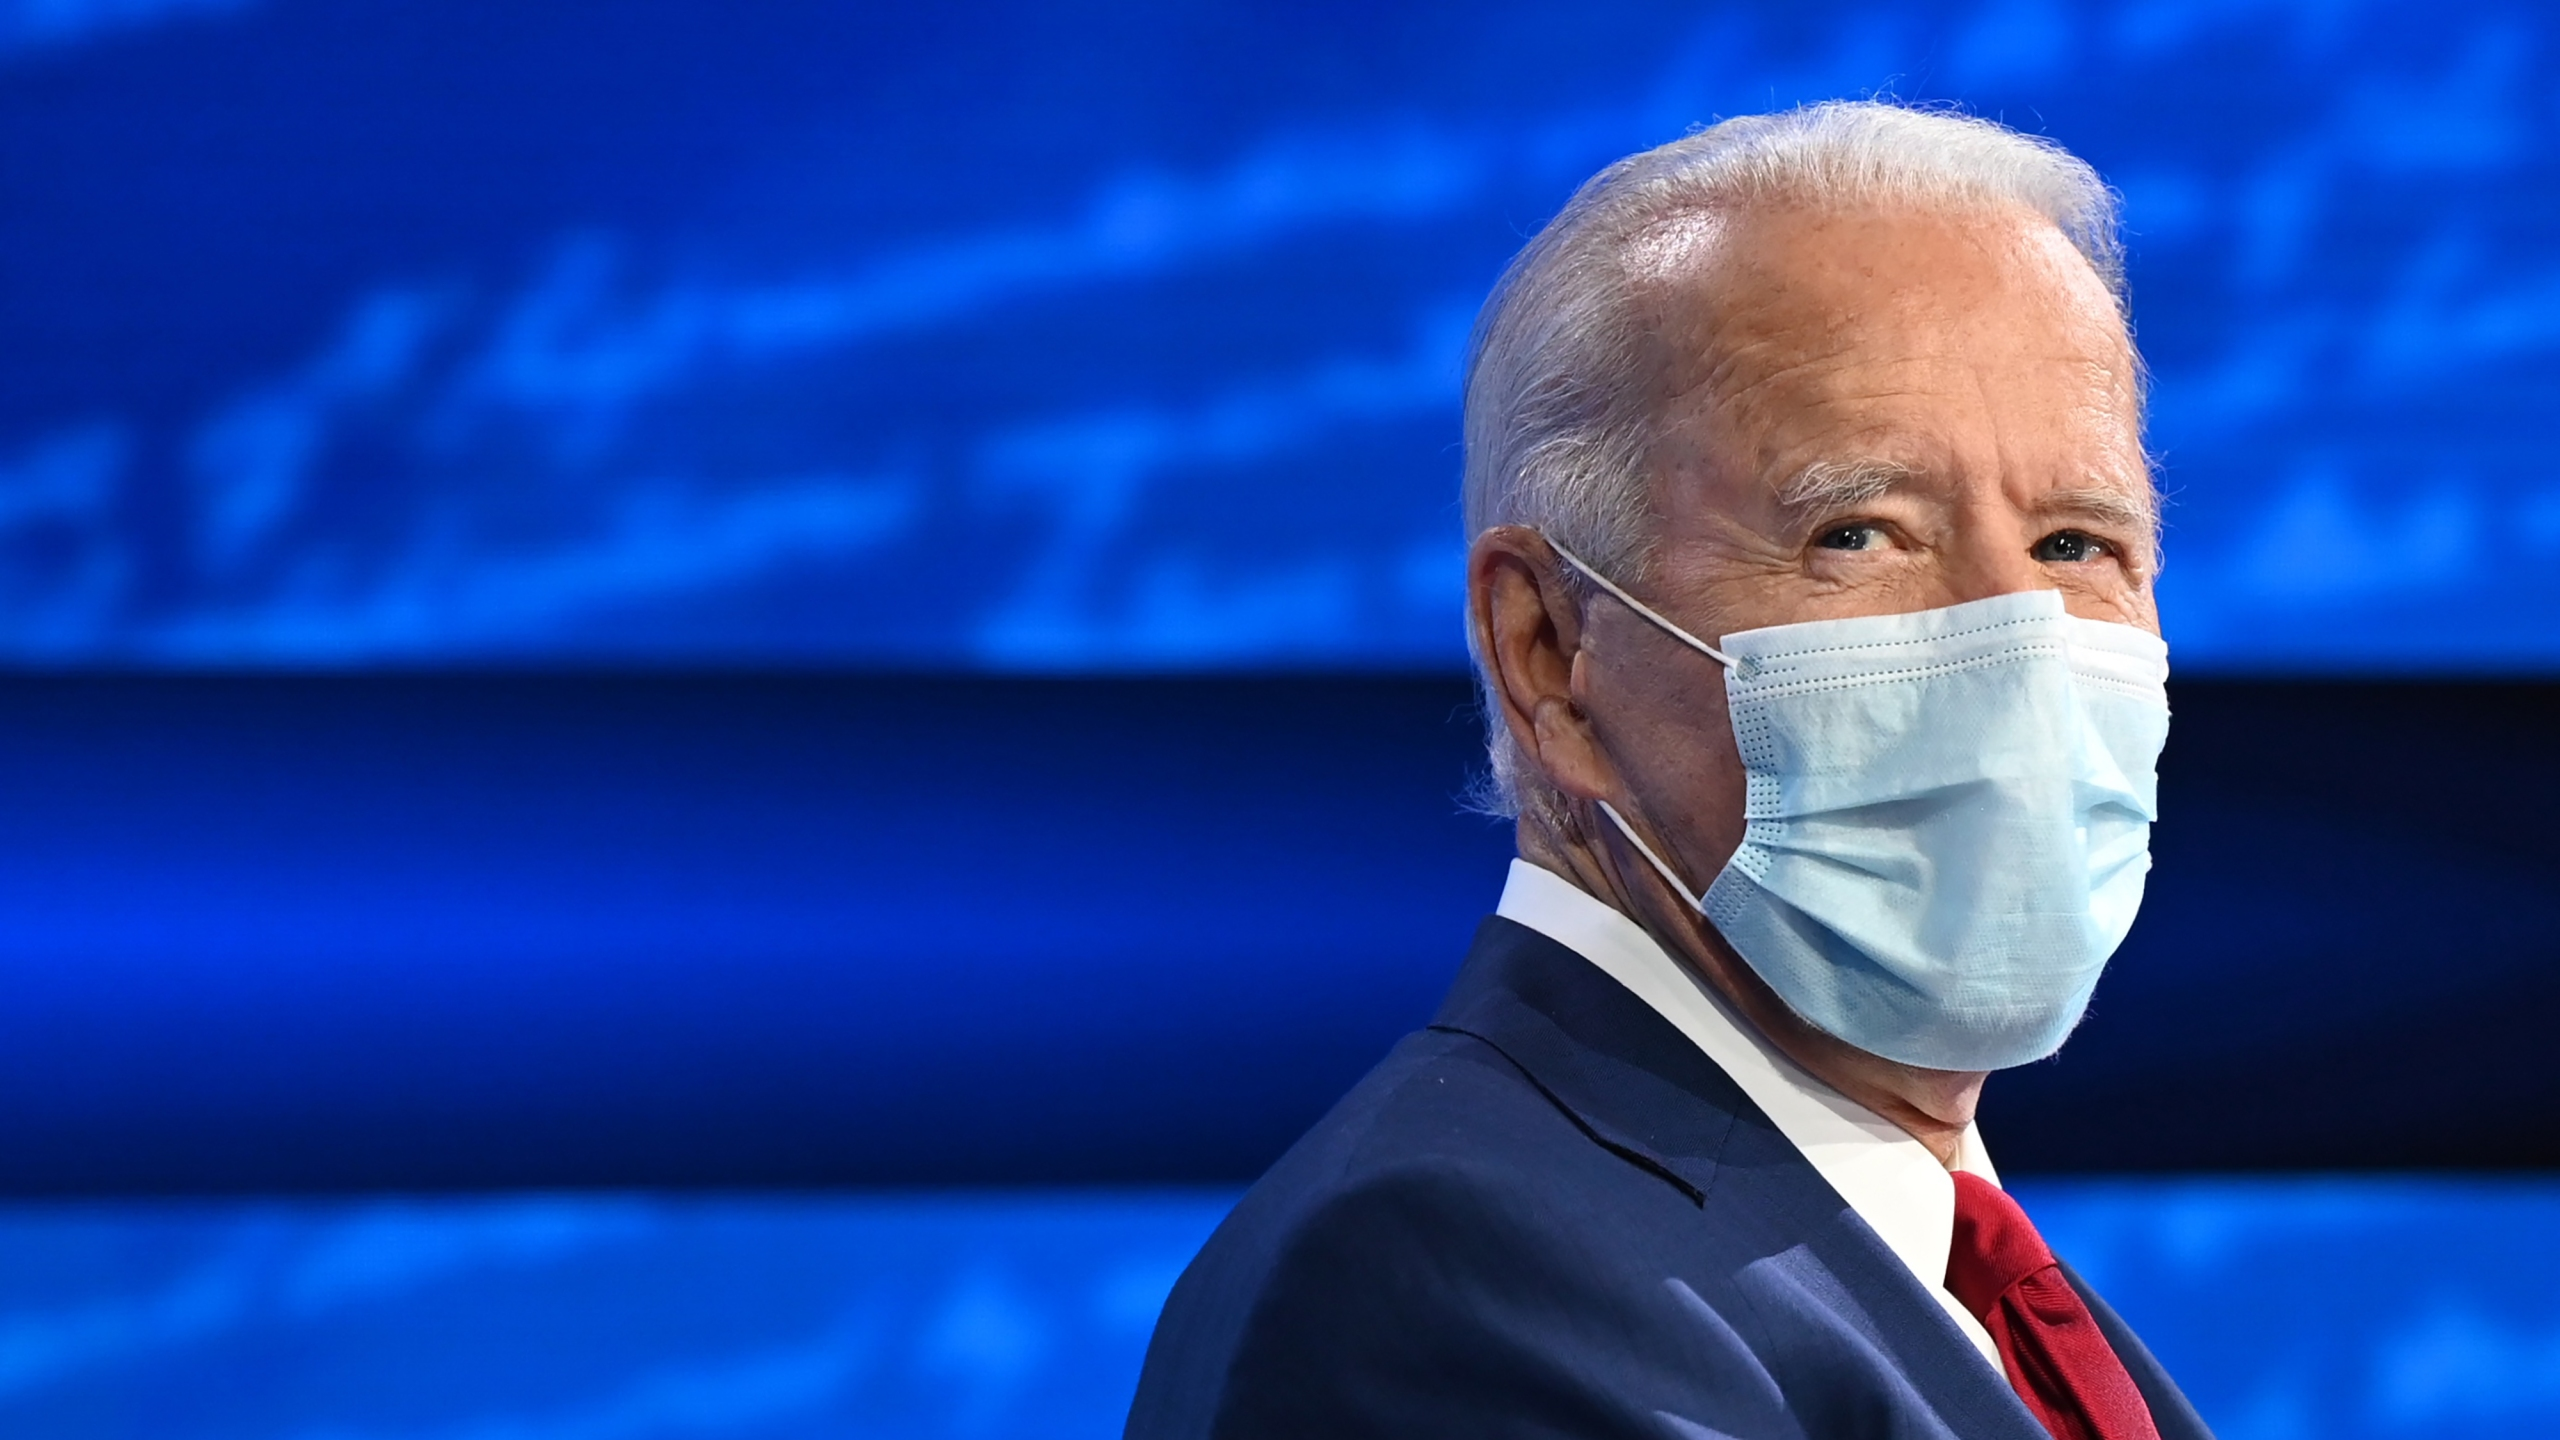 Democratic presidential candidate and former Vice President Joe Biden participates in an ABC News town hall in Philadelphia on Oct. 15, 2020. (Jim Watson / AFP / Getty Images)